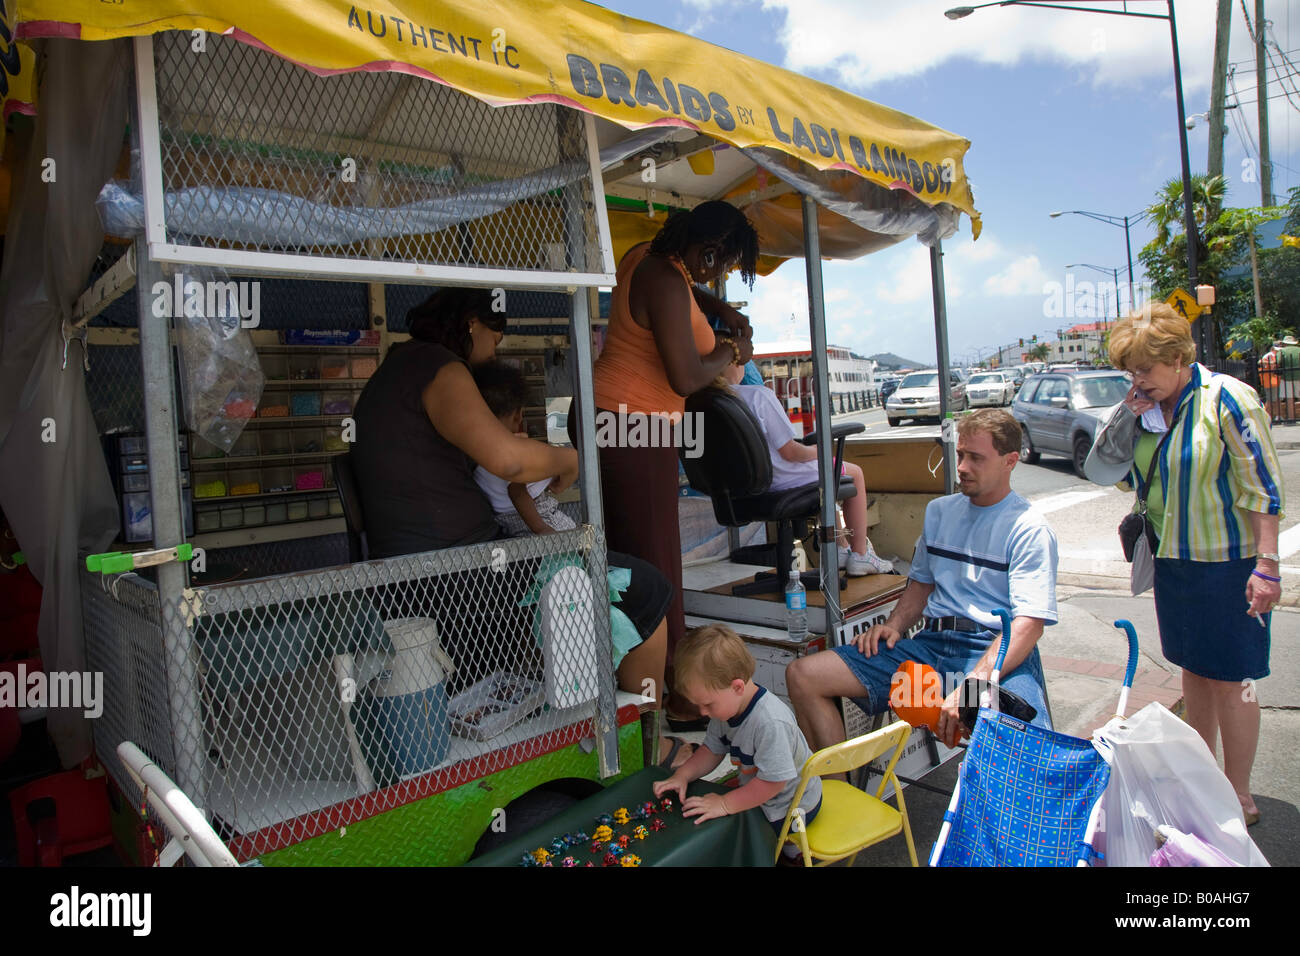 Flee market in St Thomas in the Caribbean Sea Stock Photo